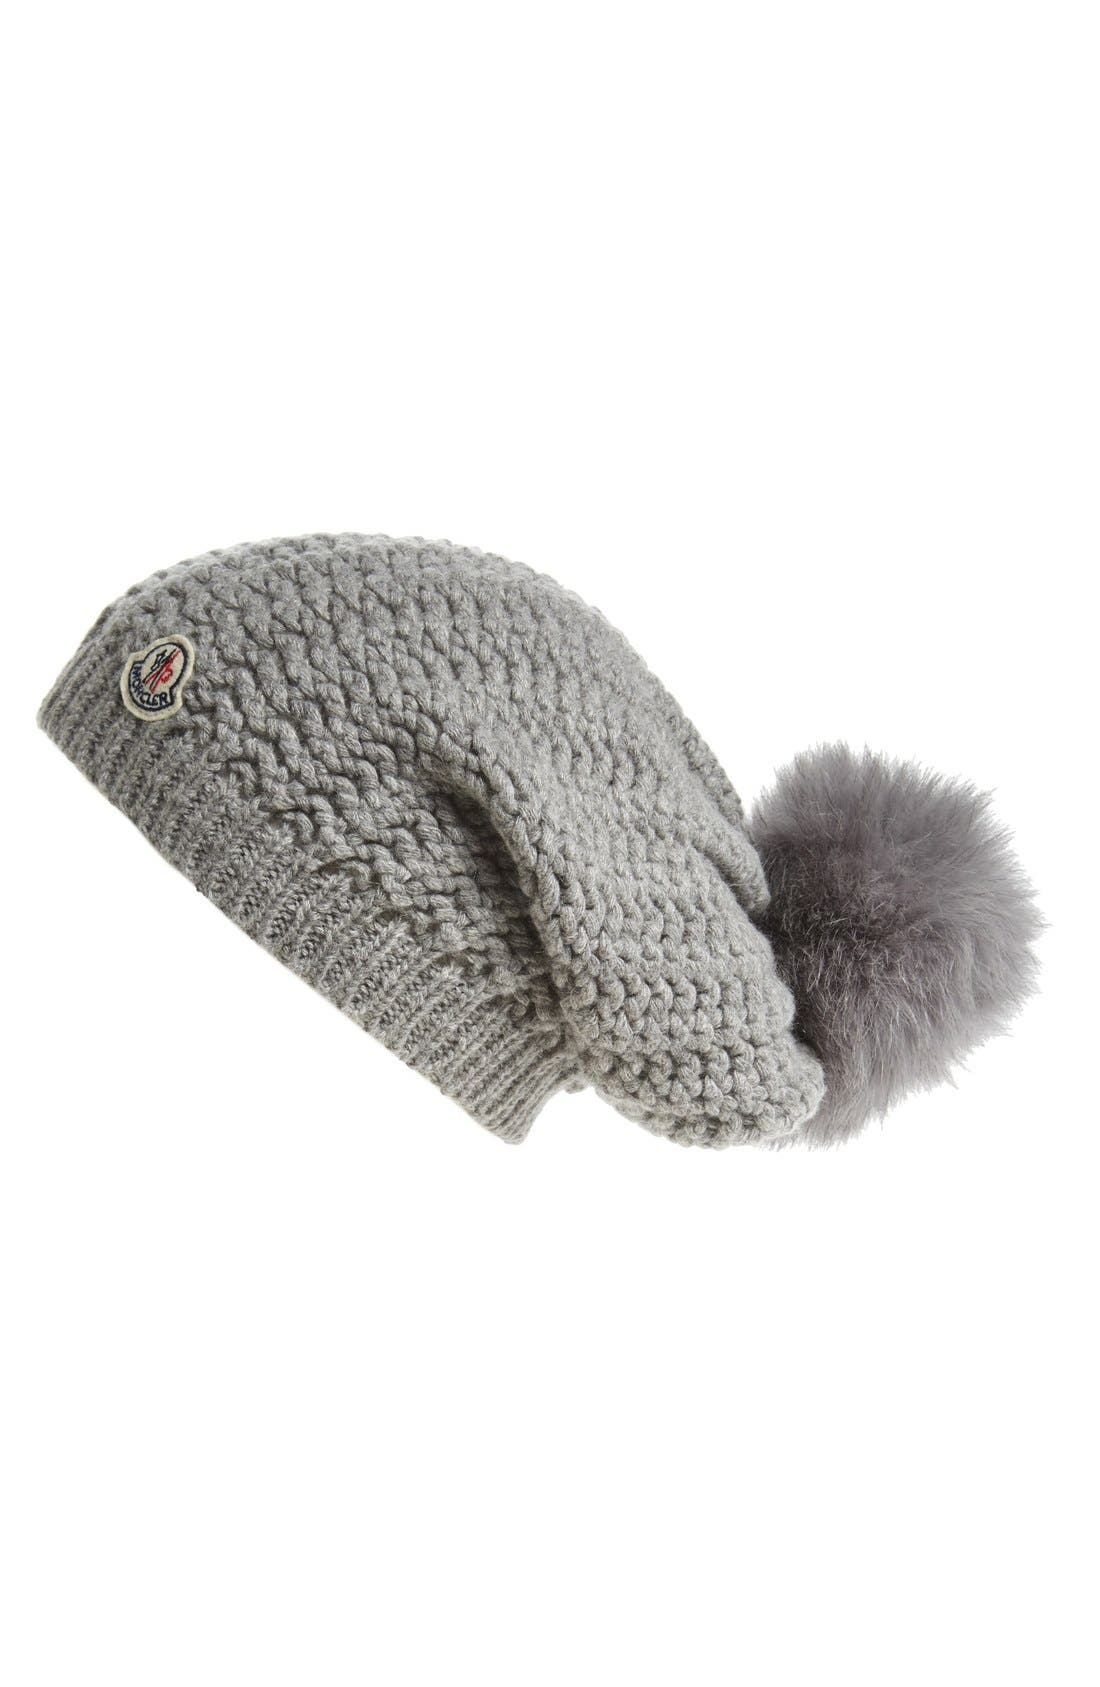 Alternate Image 1 Selected - Moncler Waffle Knit Beanie with Genuine Fox Fur Pom